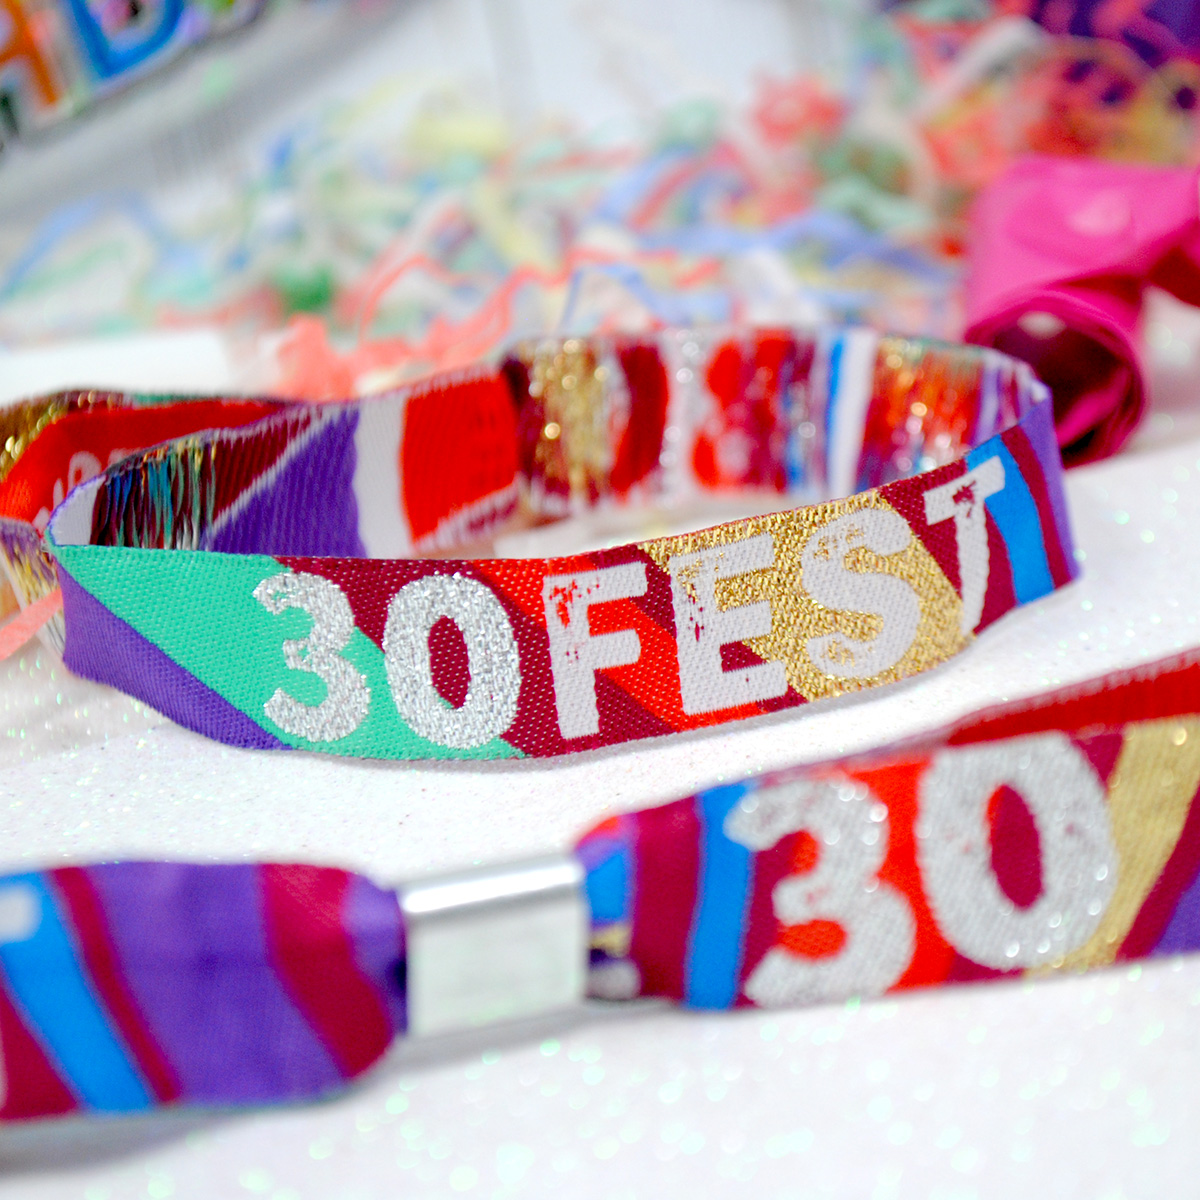 30fest festival theme birthday party wristbands